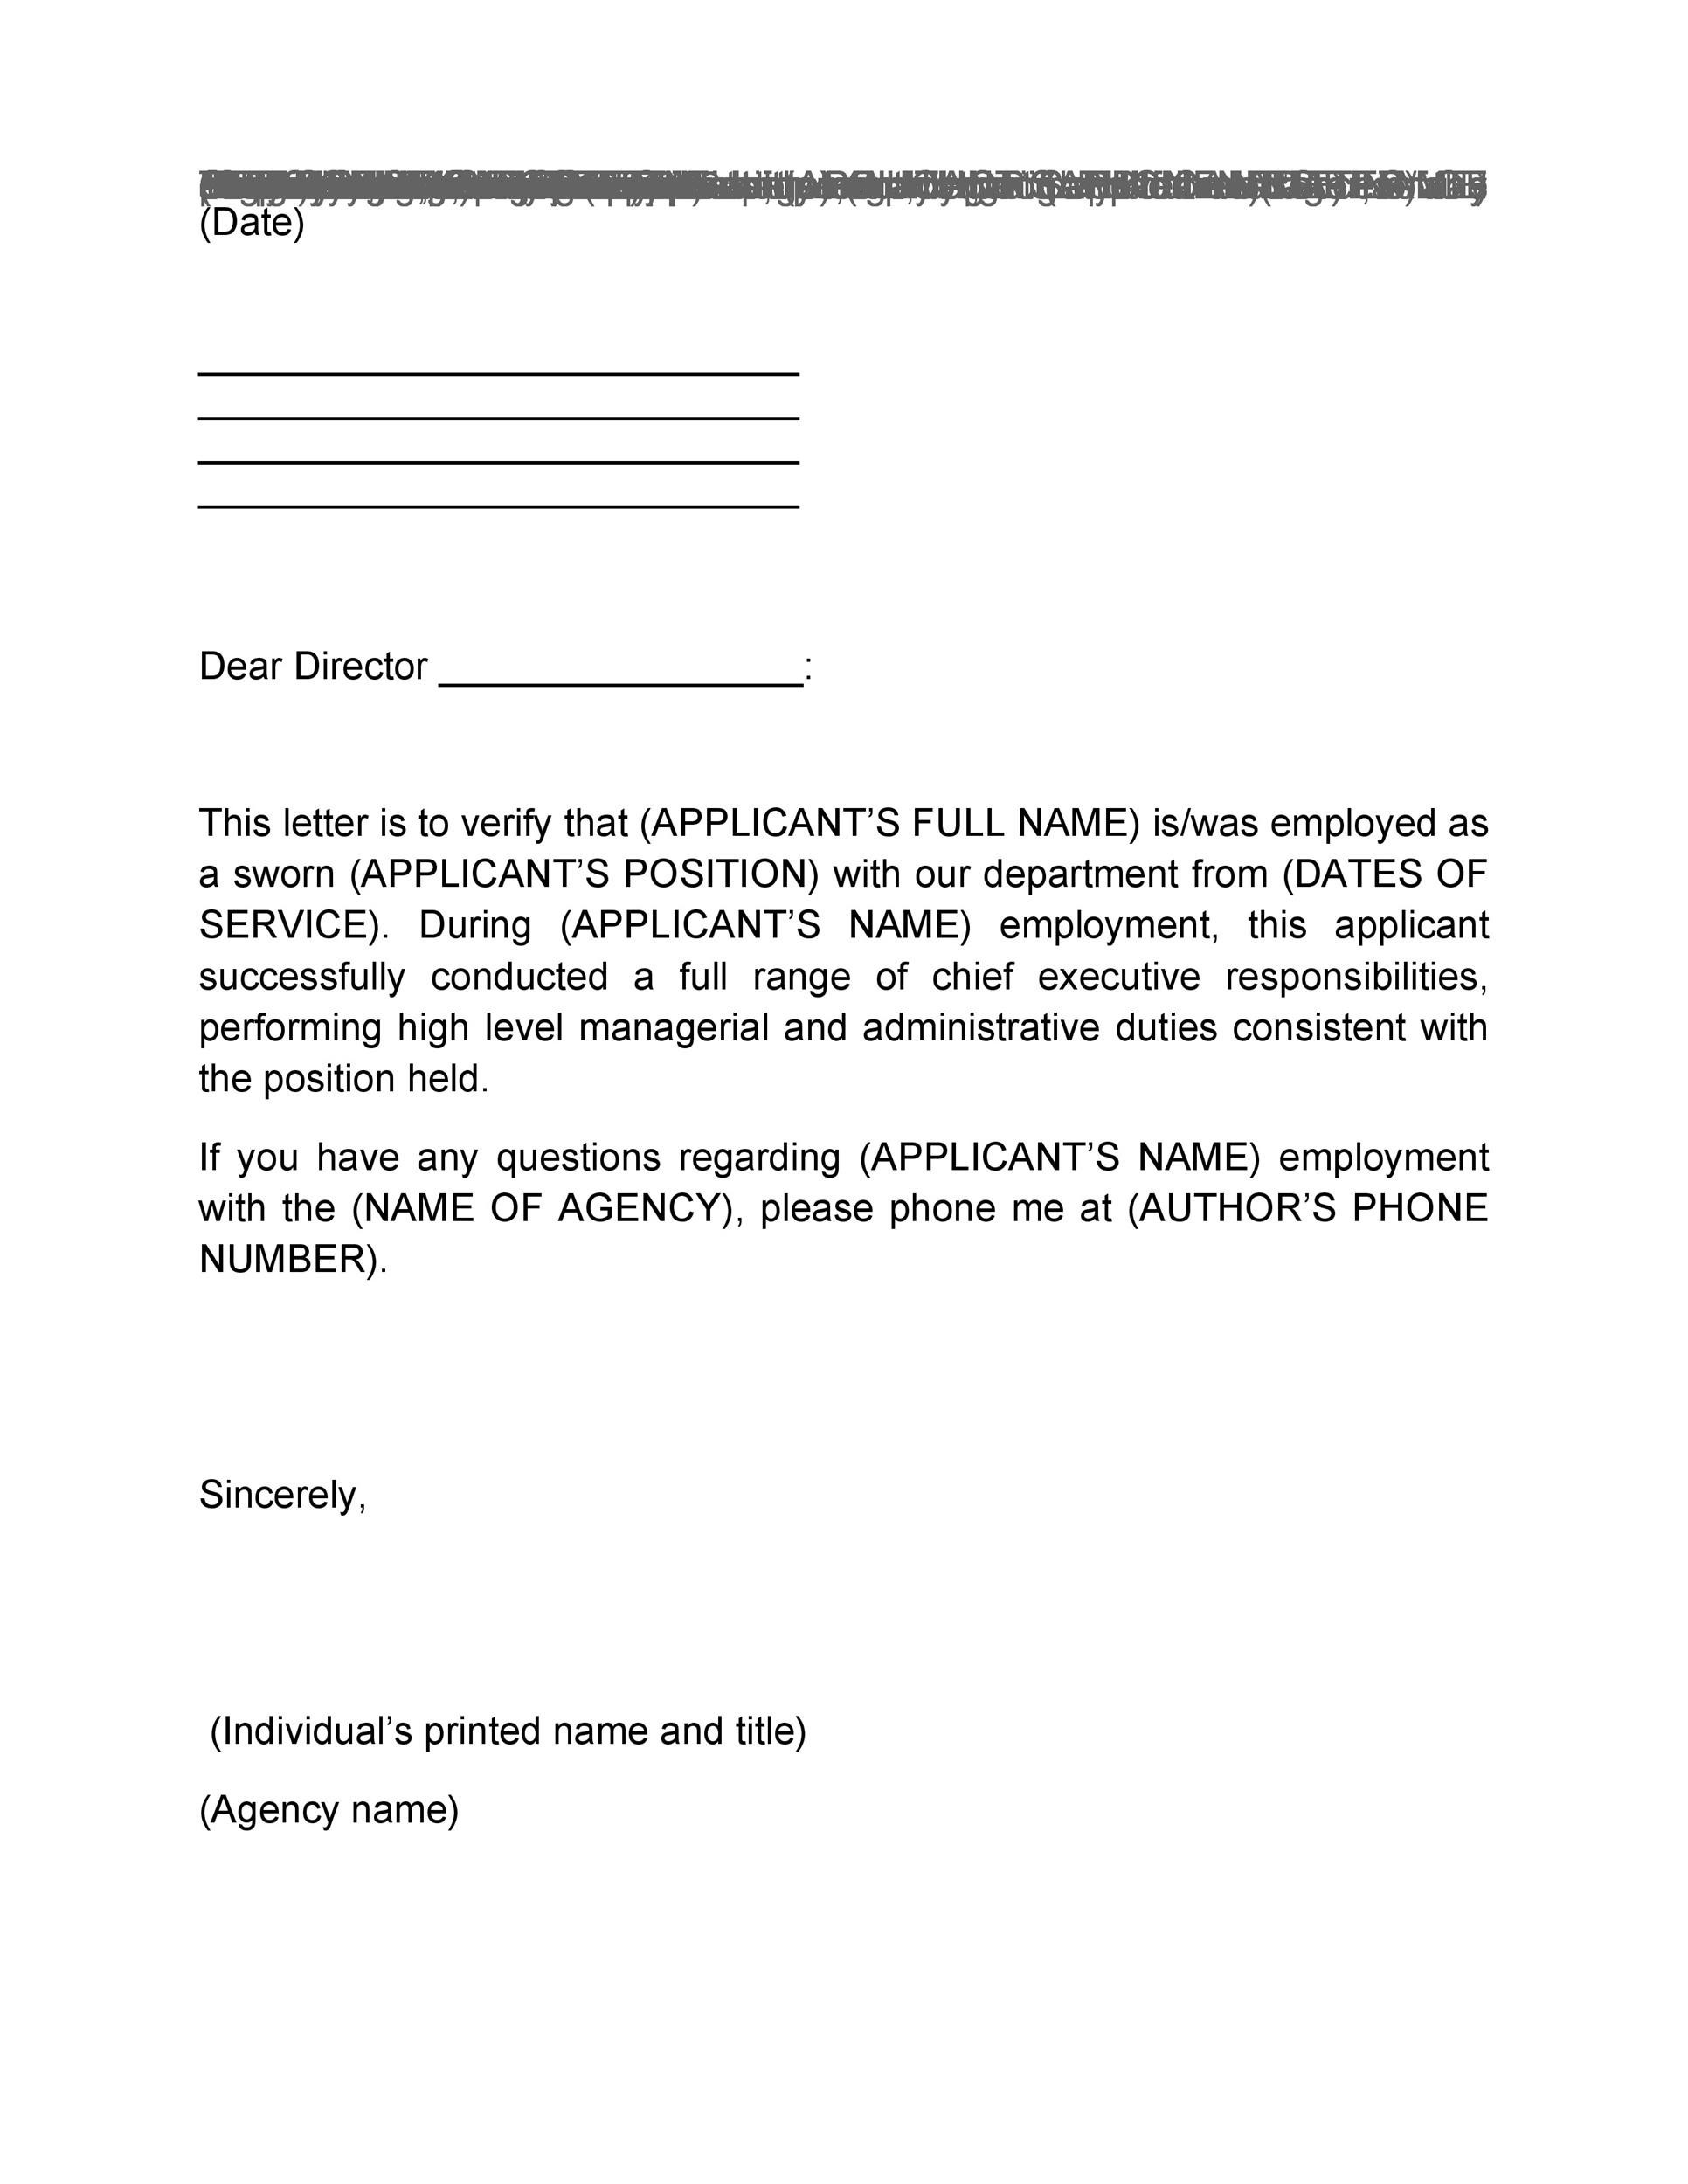 proof of employment letter template 01 - Verification Of Employment Sample Letter